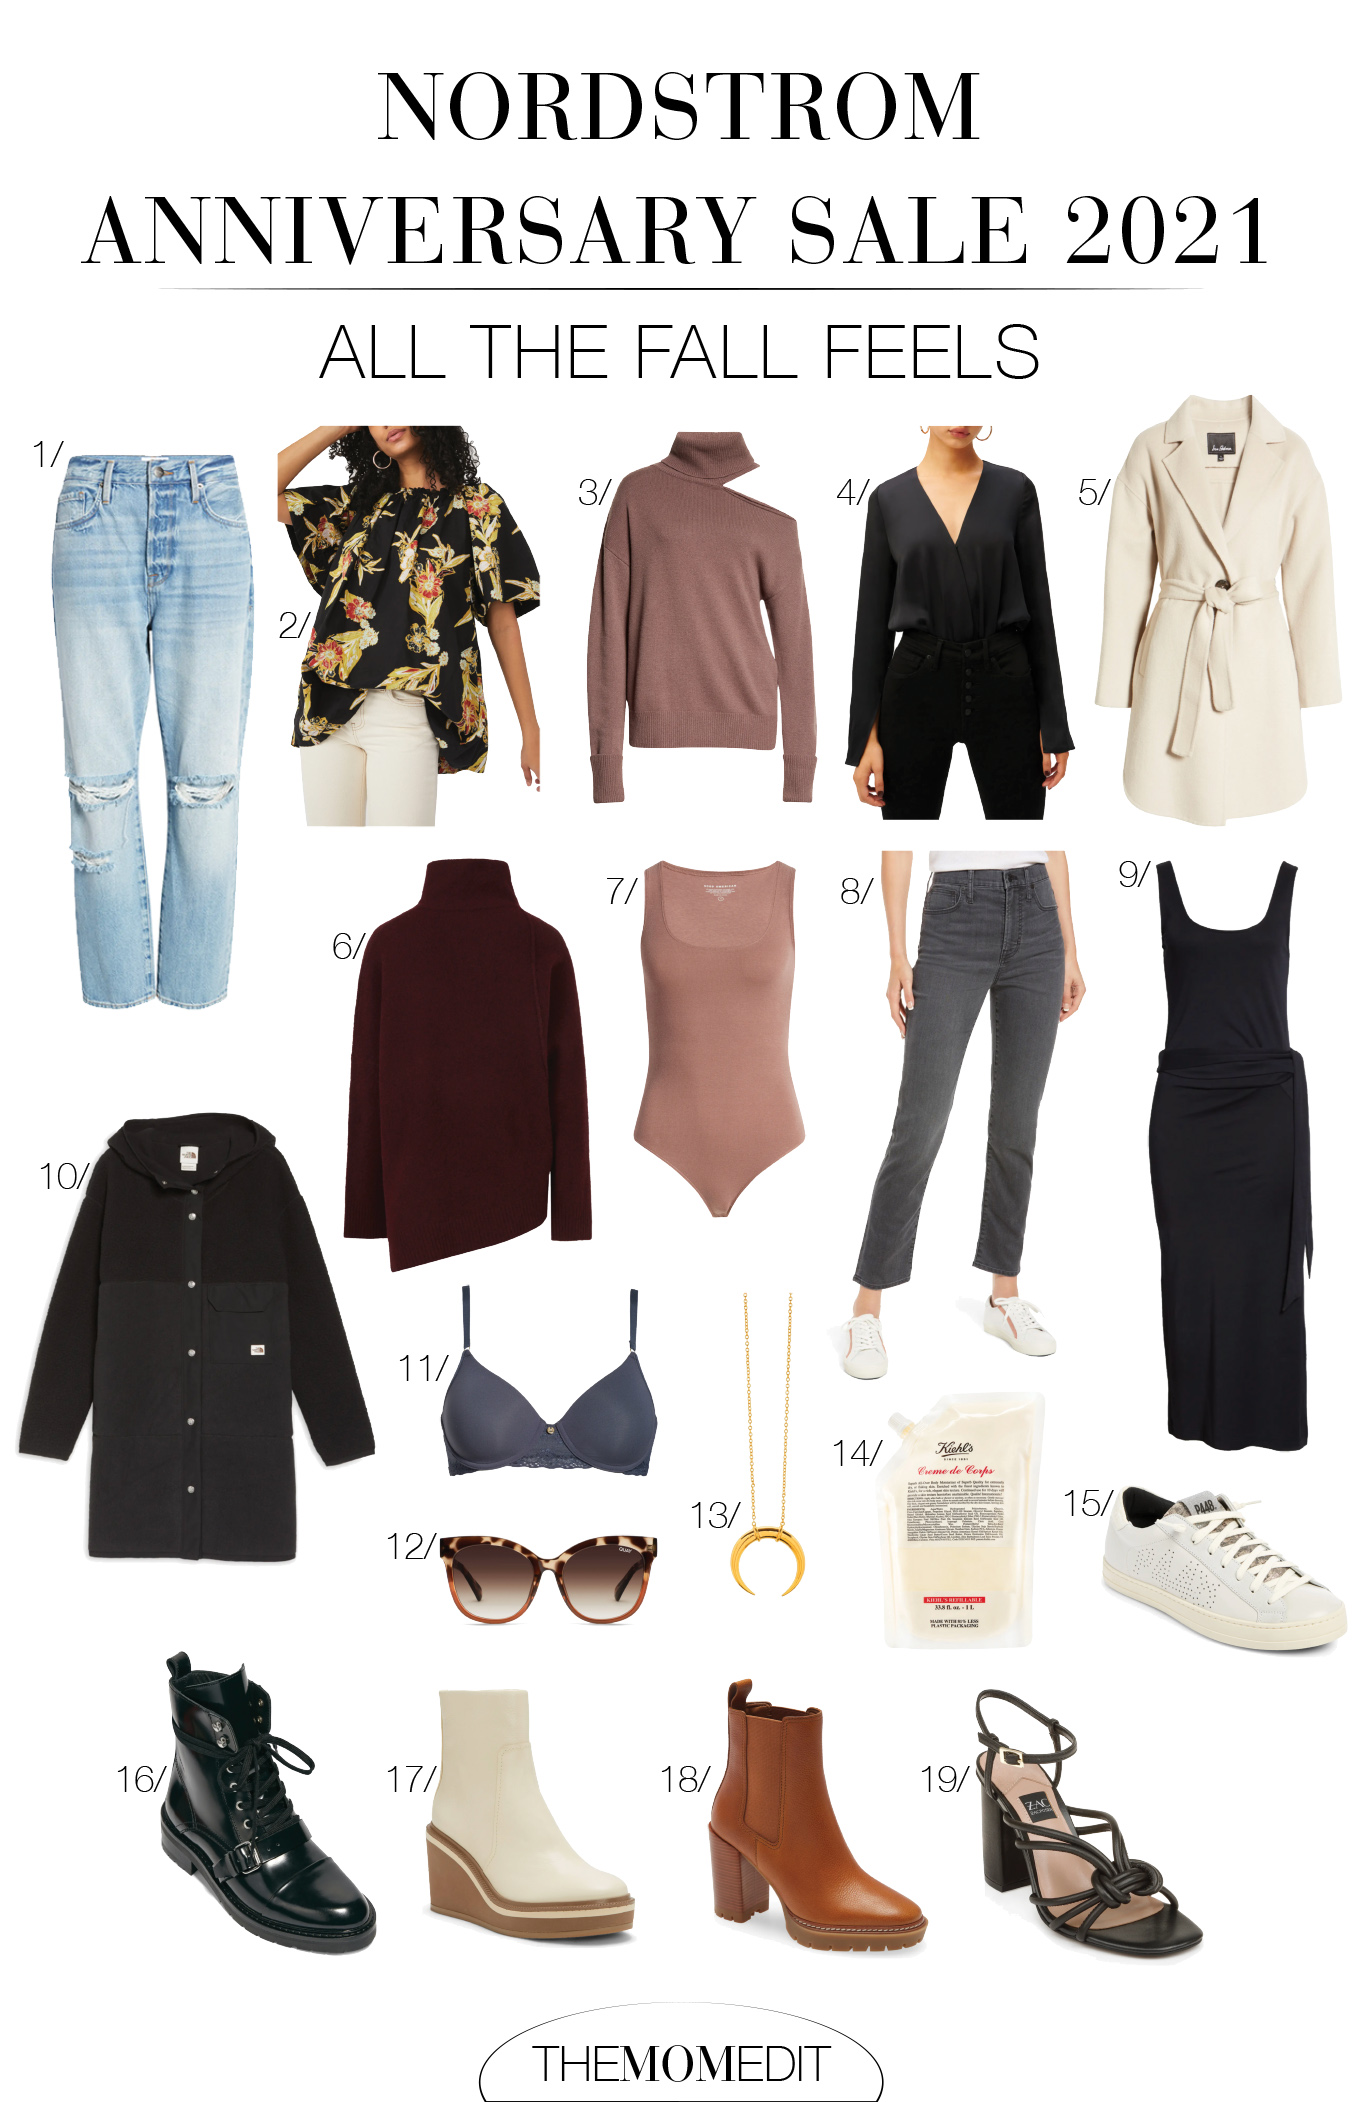 Updating my fall closet wi/ my 3 fav fall wardrobe staples: boots (lug sole Chelsea boots, please), jeans (straight-leg, high waist denim for life,) + sweaters (oversized chunky knit pullovers + wool turtlenecks.)